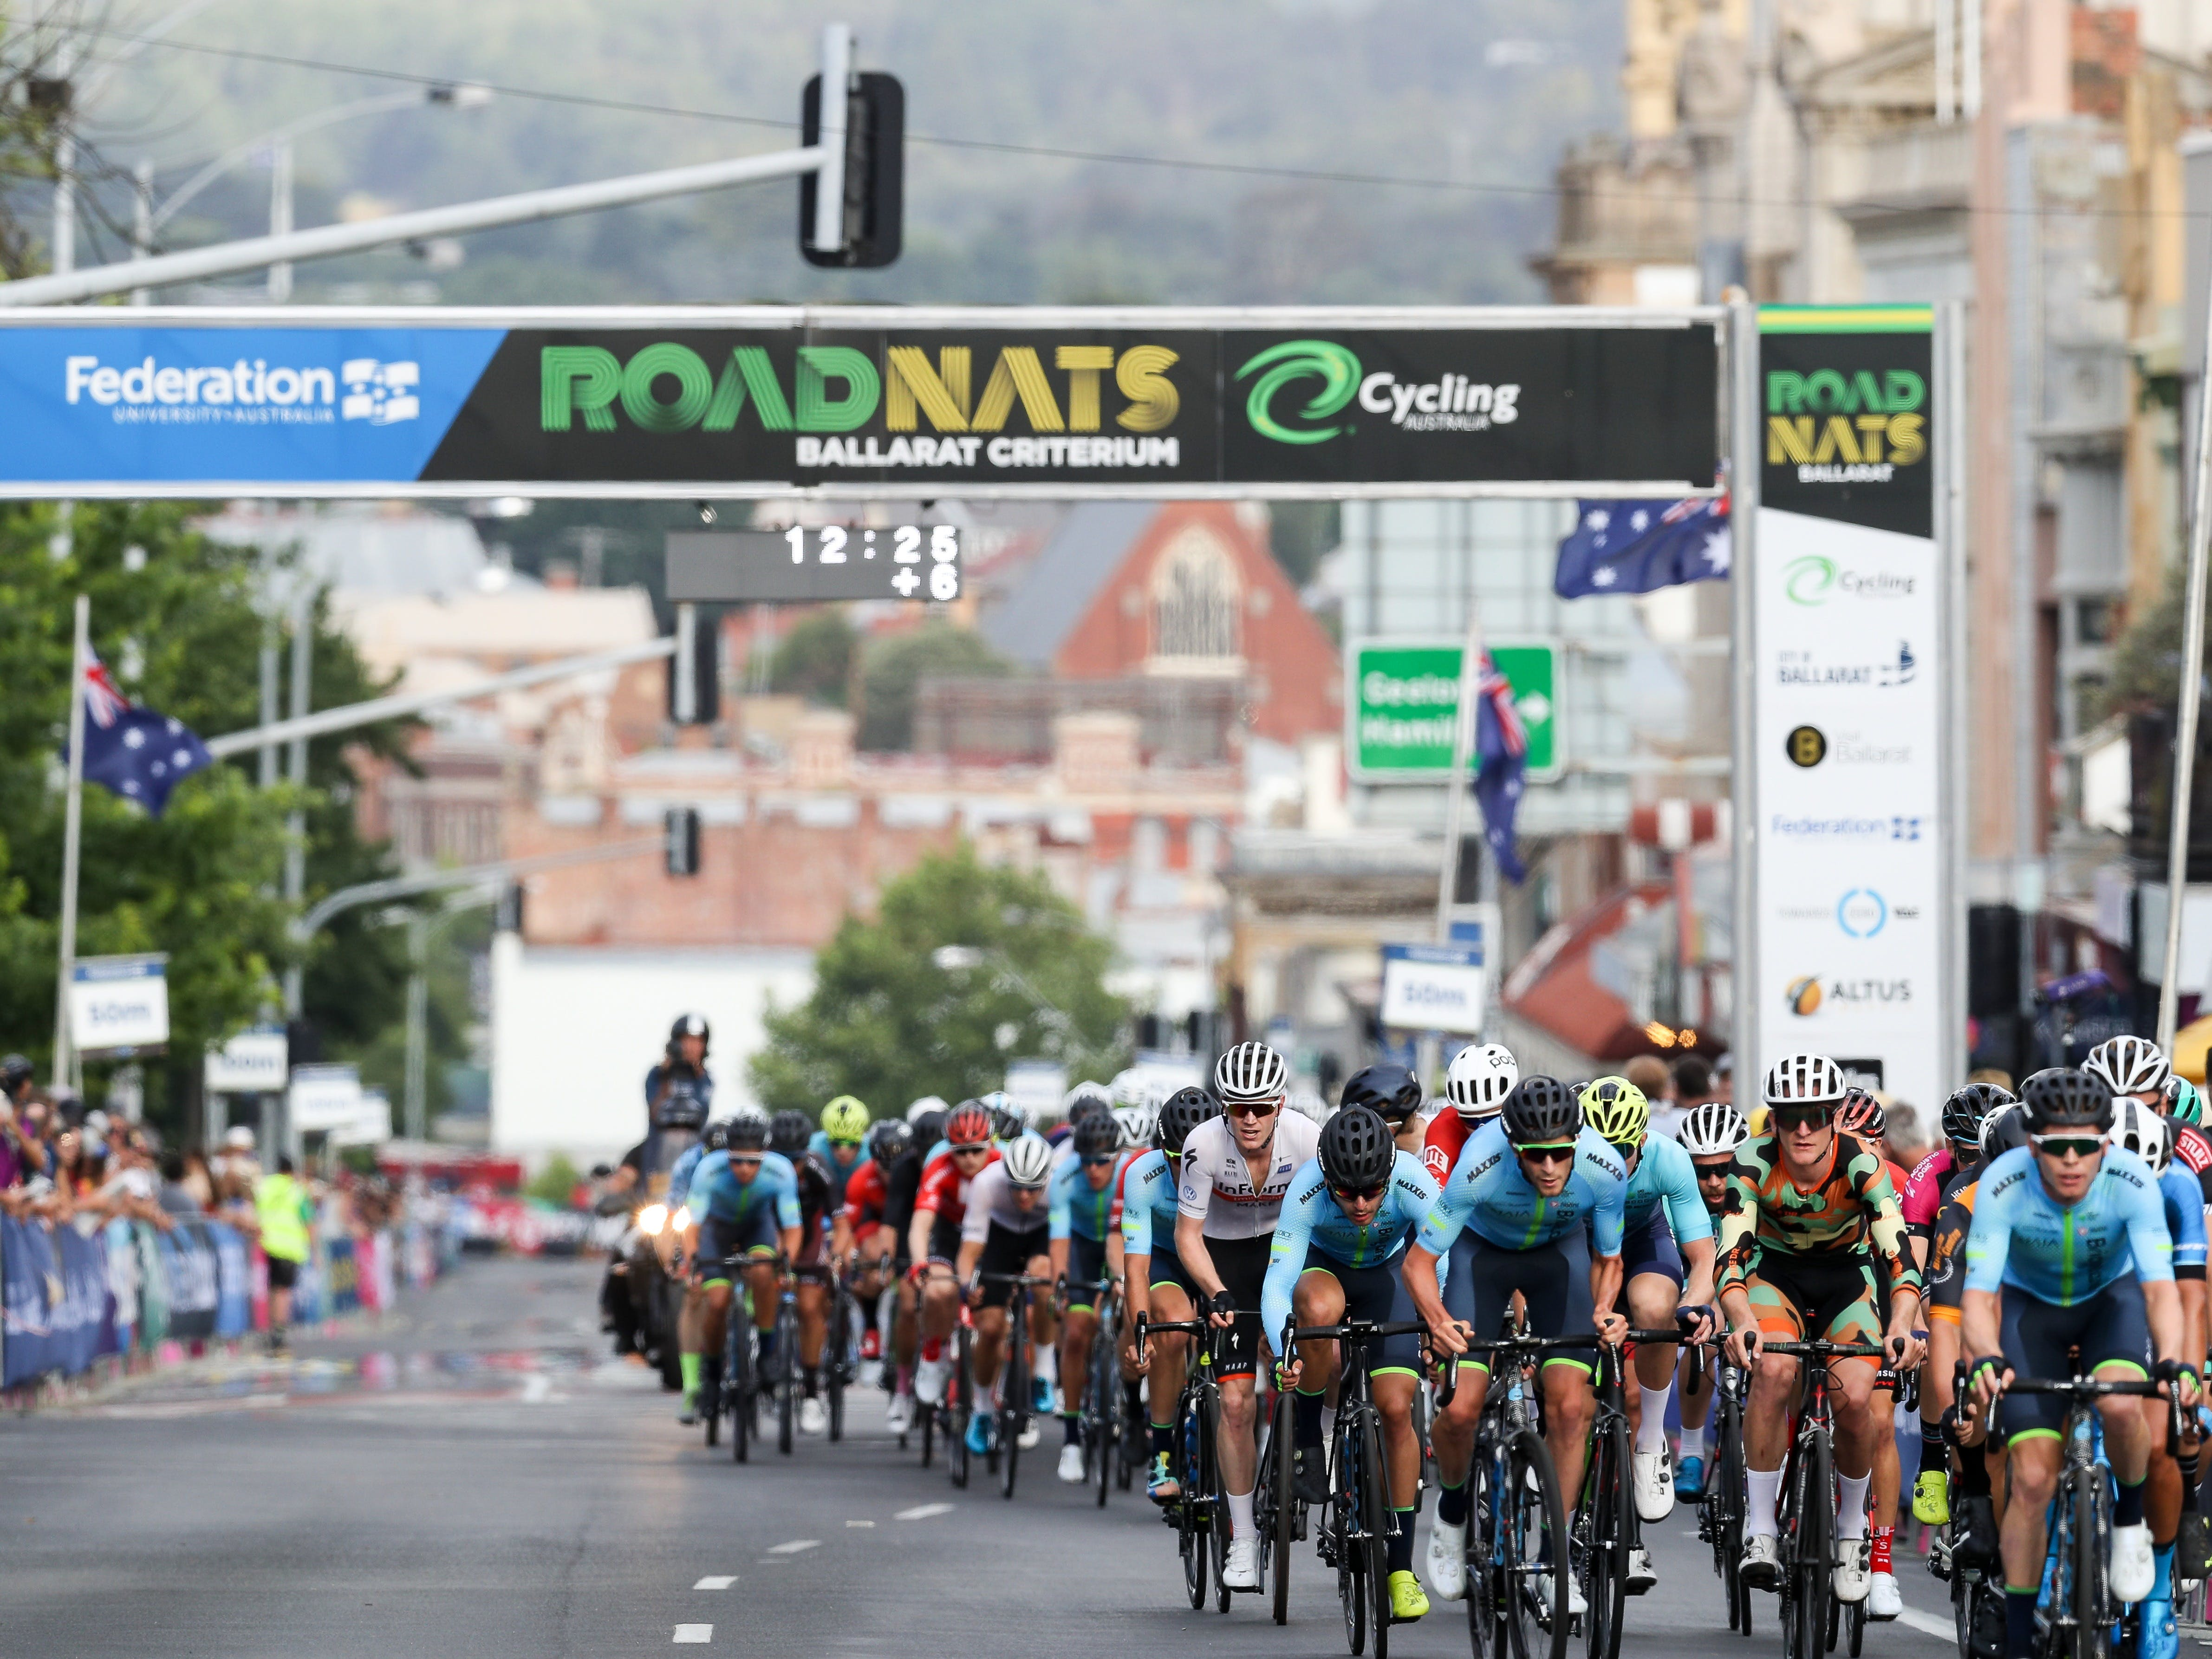 Federation University Criterium National Championships - Ballarat - Accommodation Perth